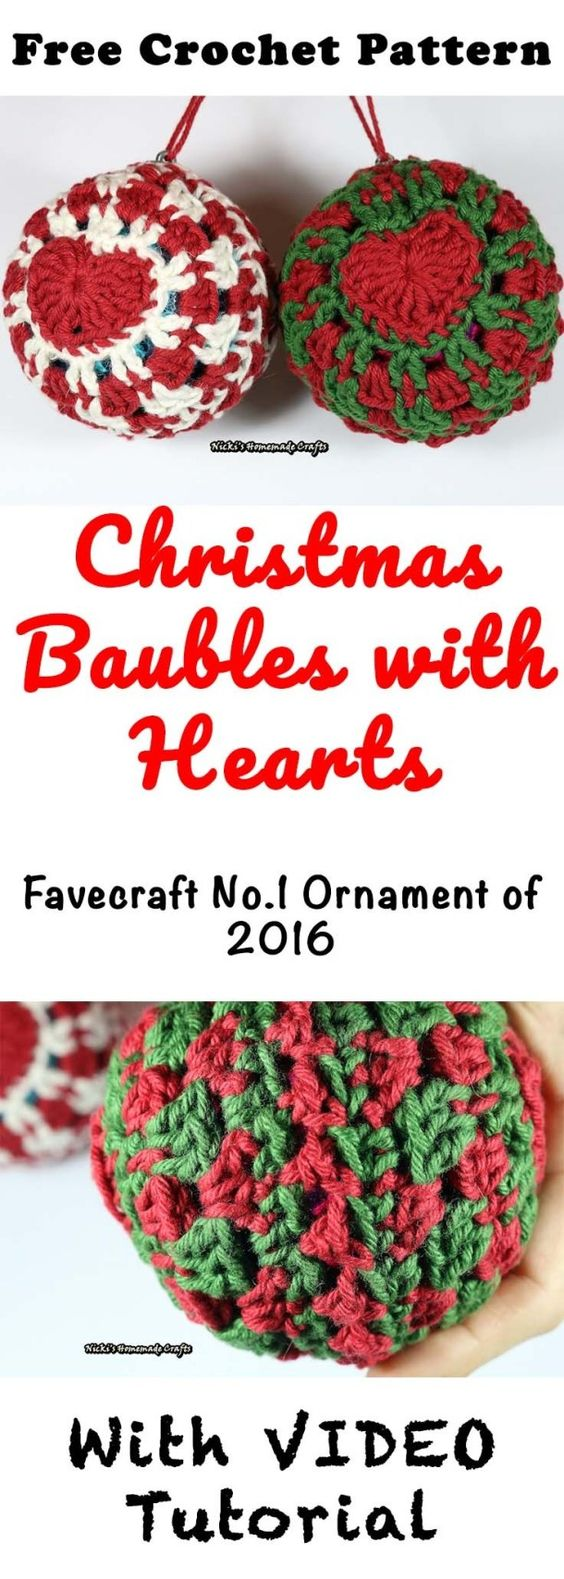 7 Christmas Baubles with Heart